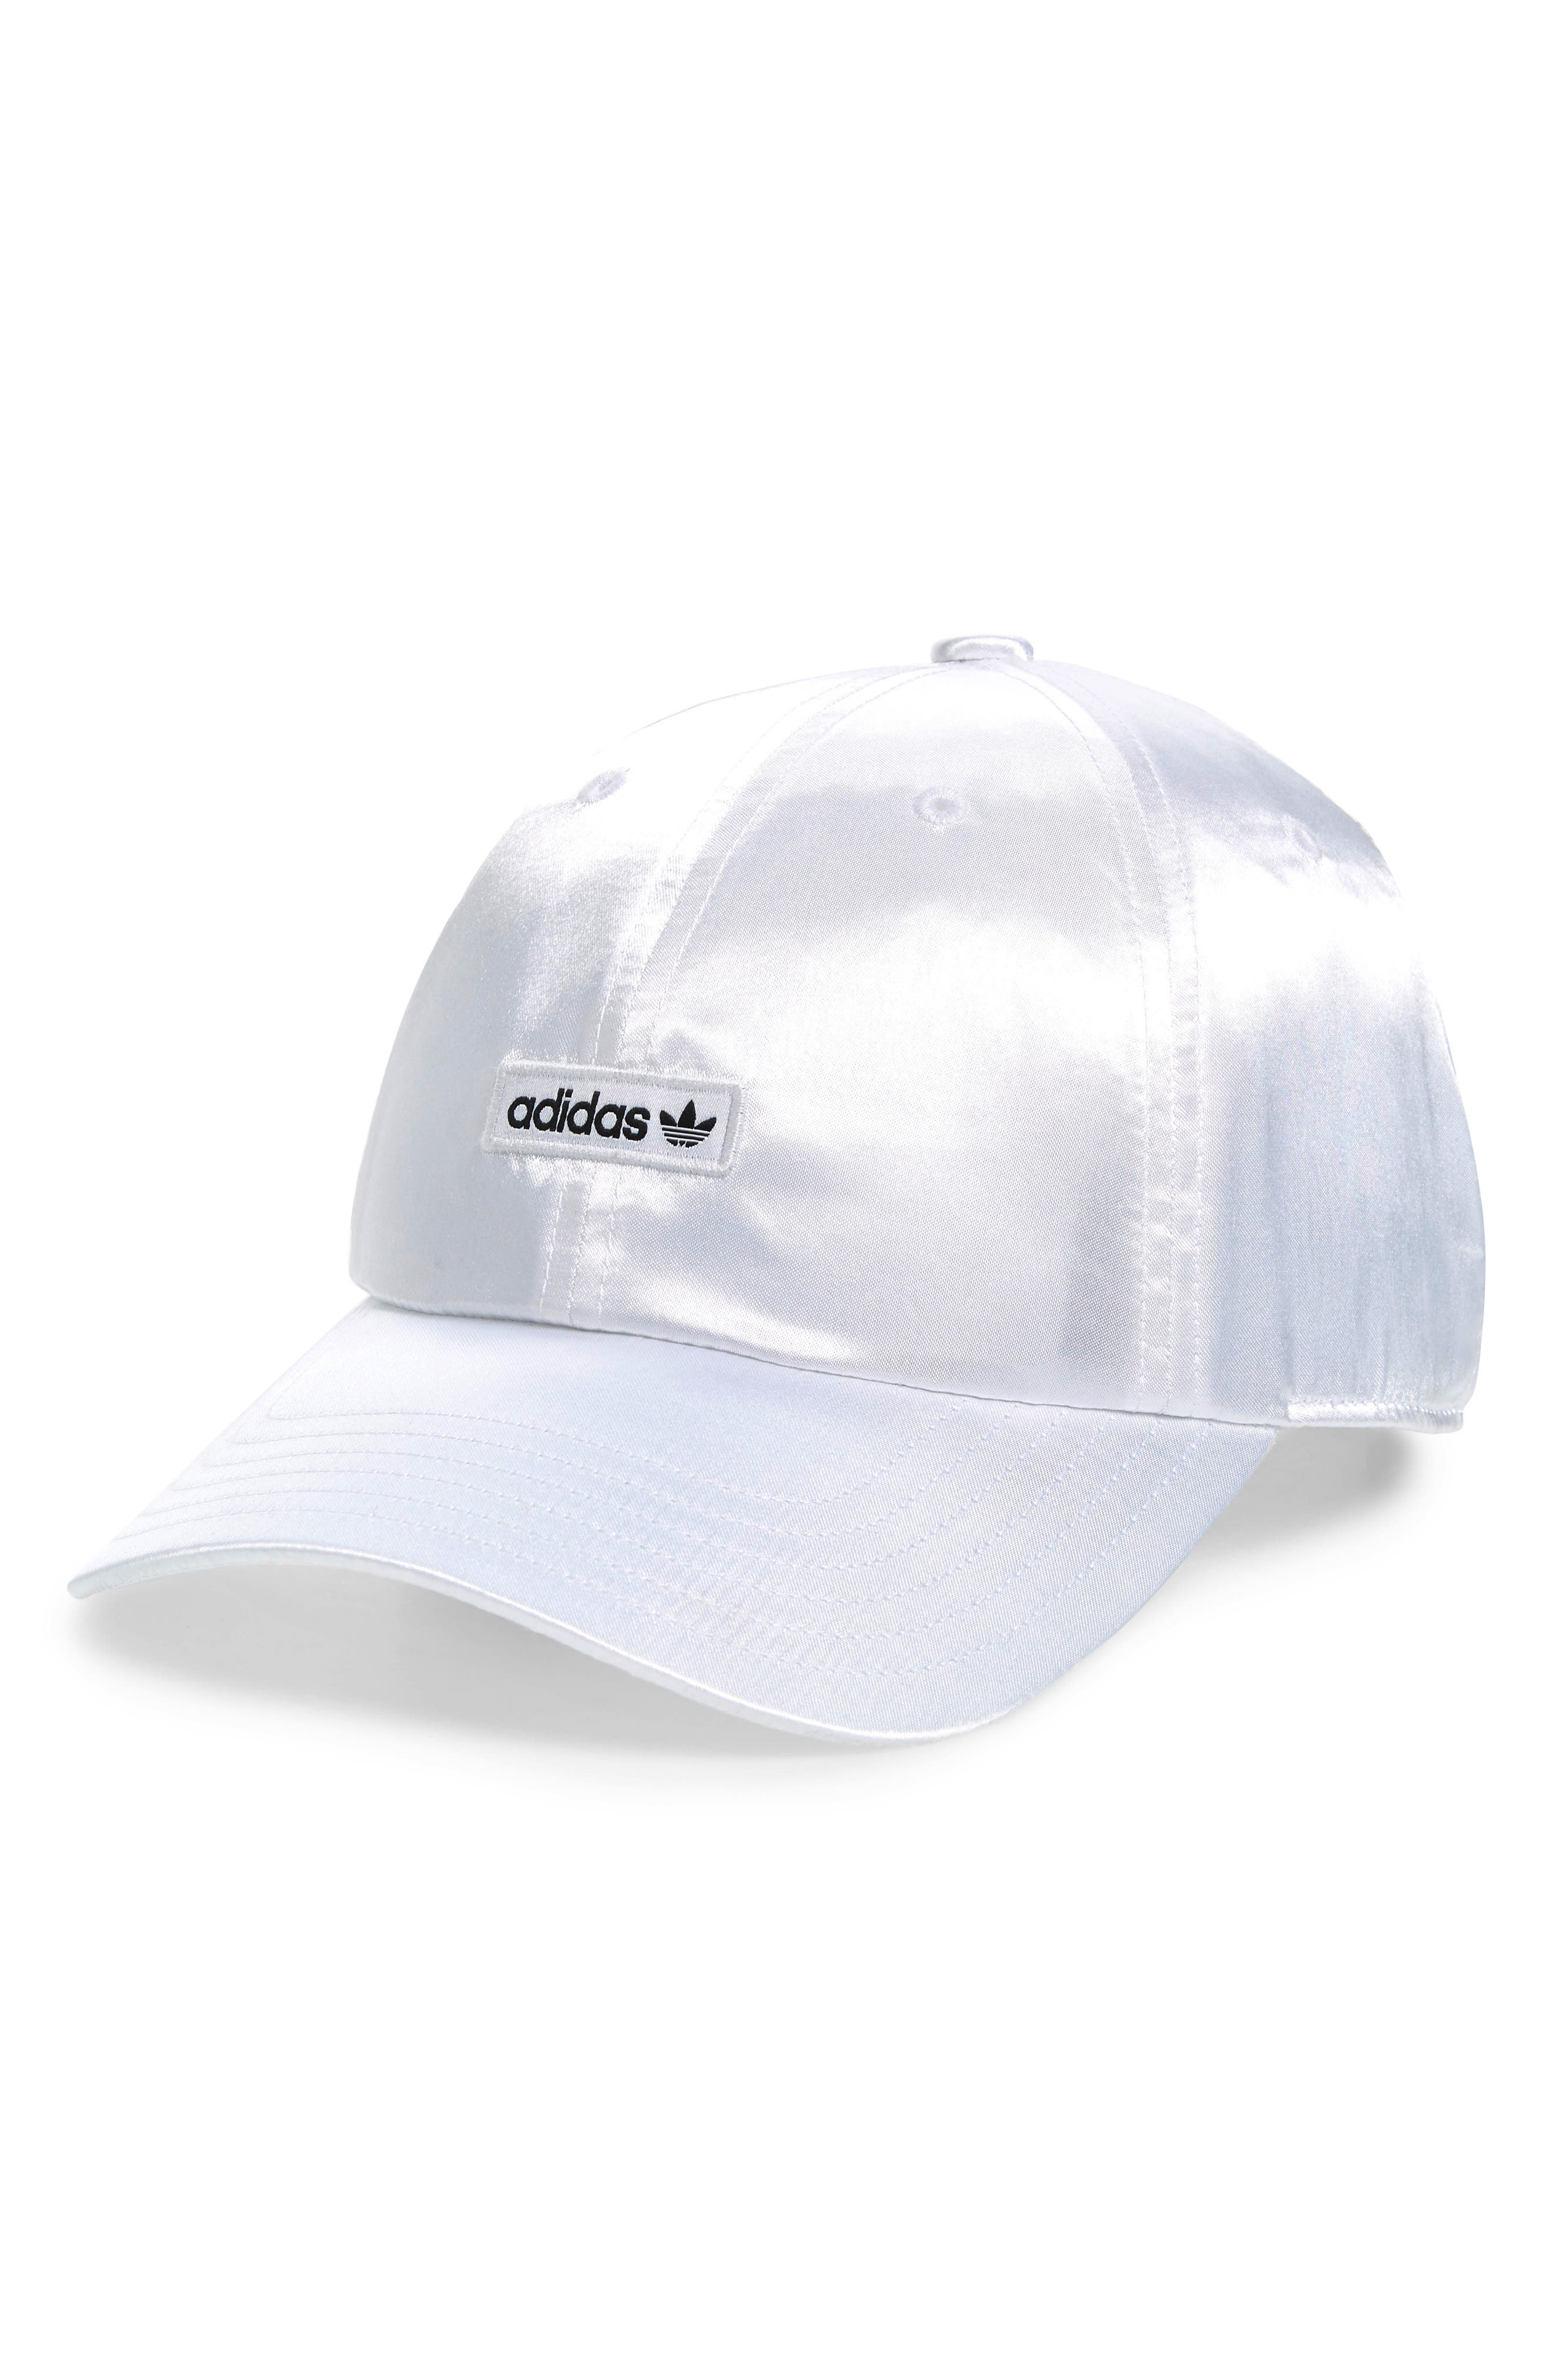 Originals Metallic Relaxed Strap Back Hat, Main, color, WHITE/ BLACK